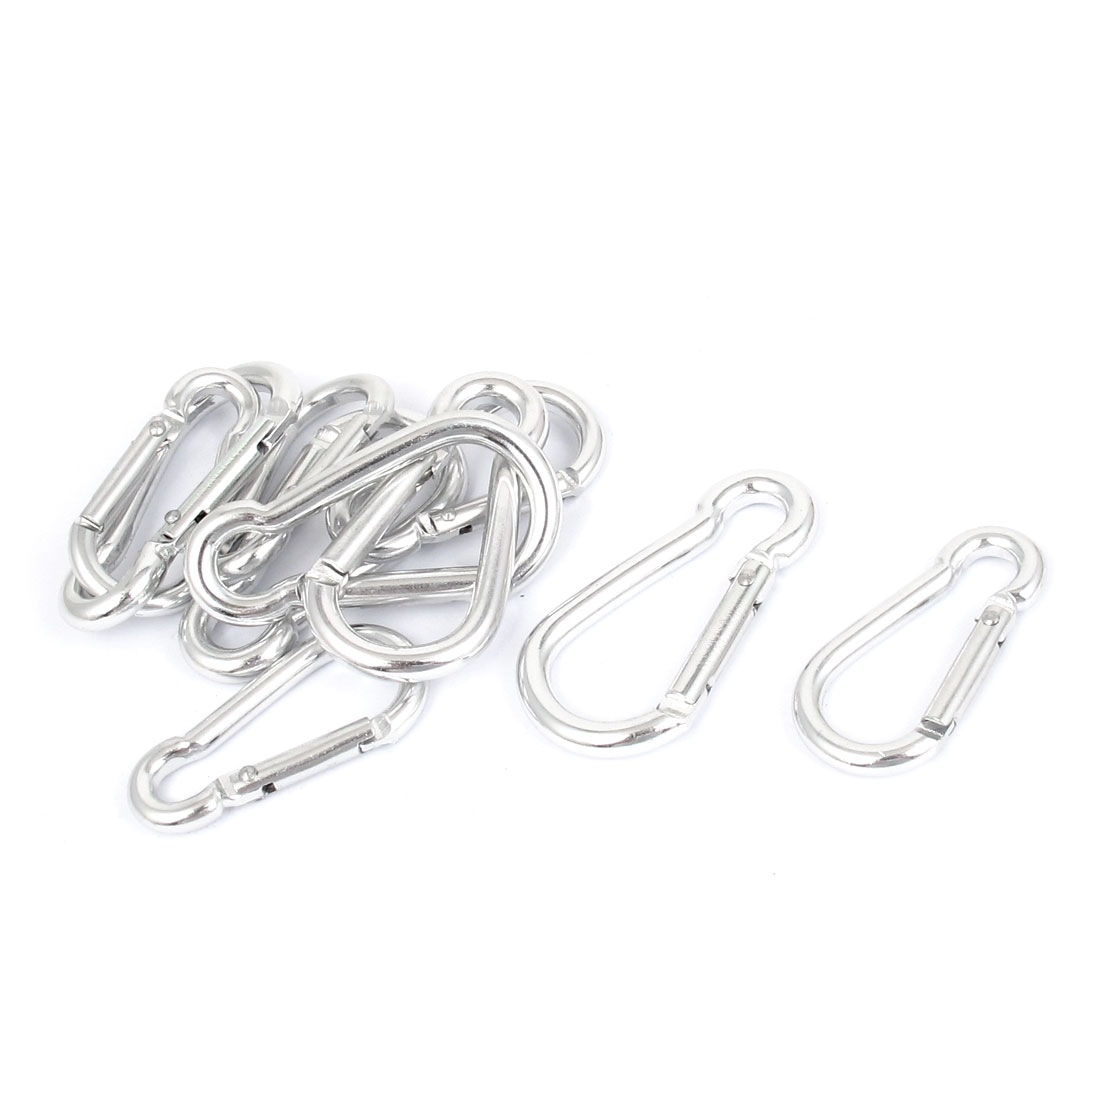 10 Pcs Silver Tone Metal Bottle Gourd Shape Spring Loaded Screw Locking Snap Carabiner Camp Hook Buckle